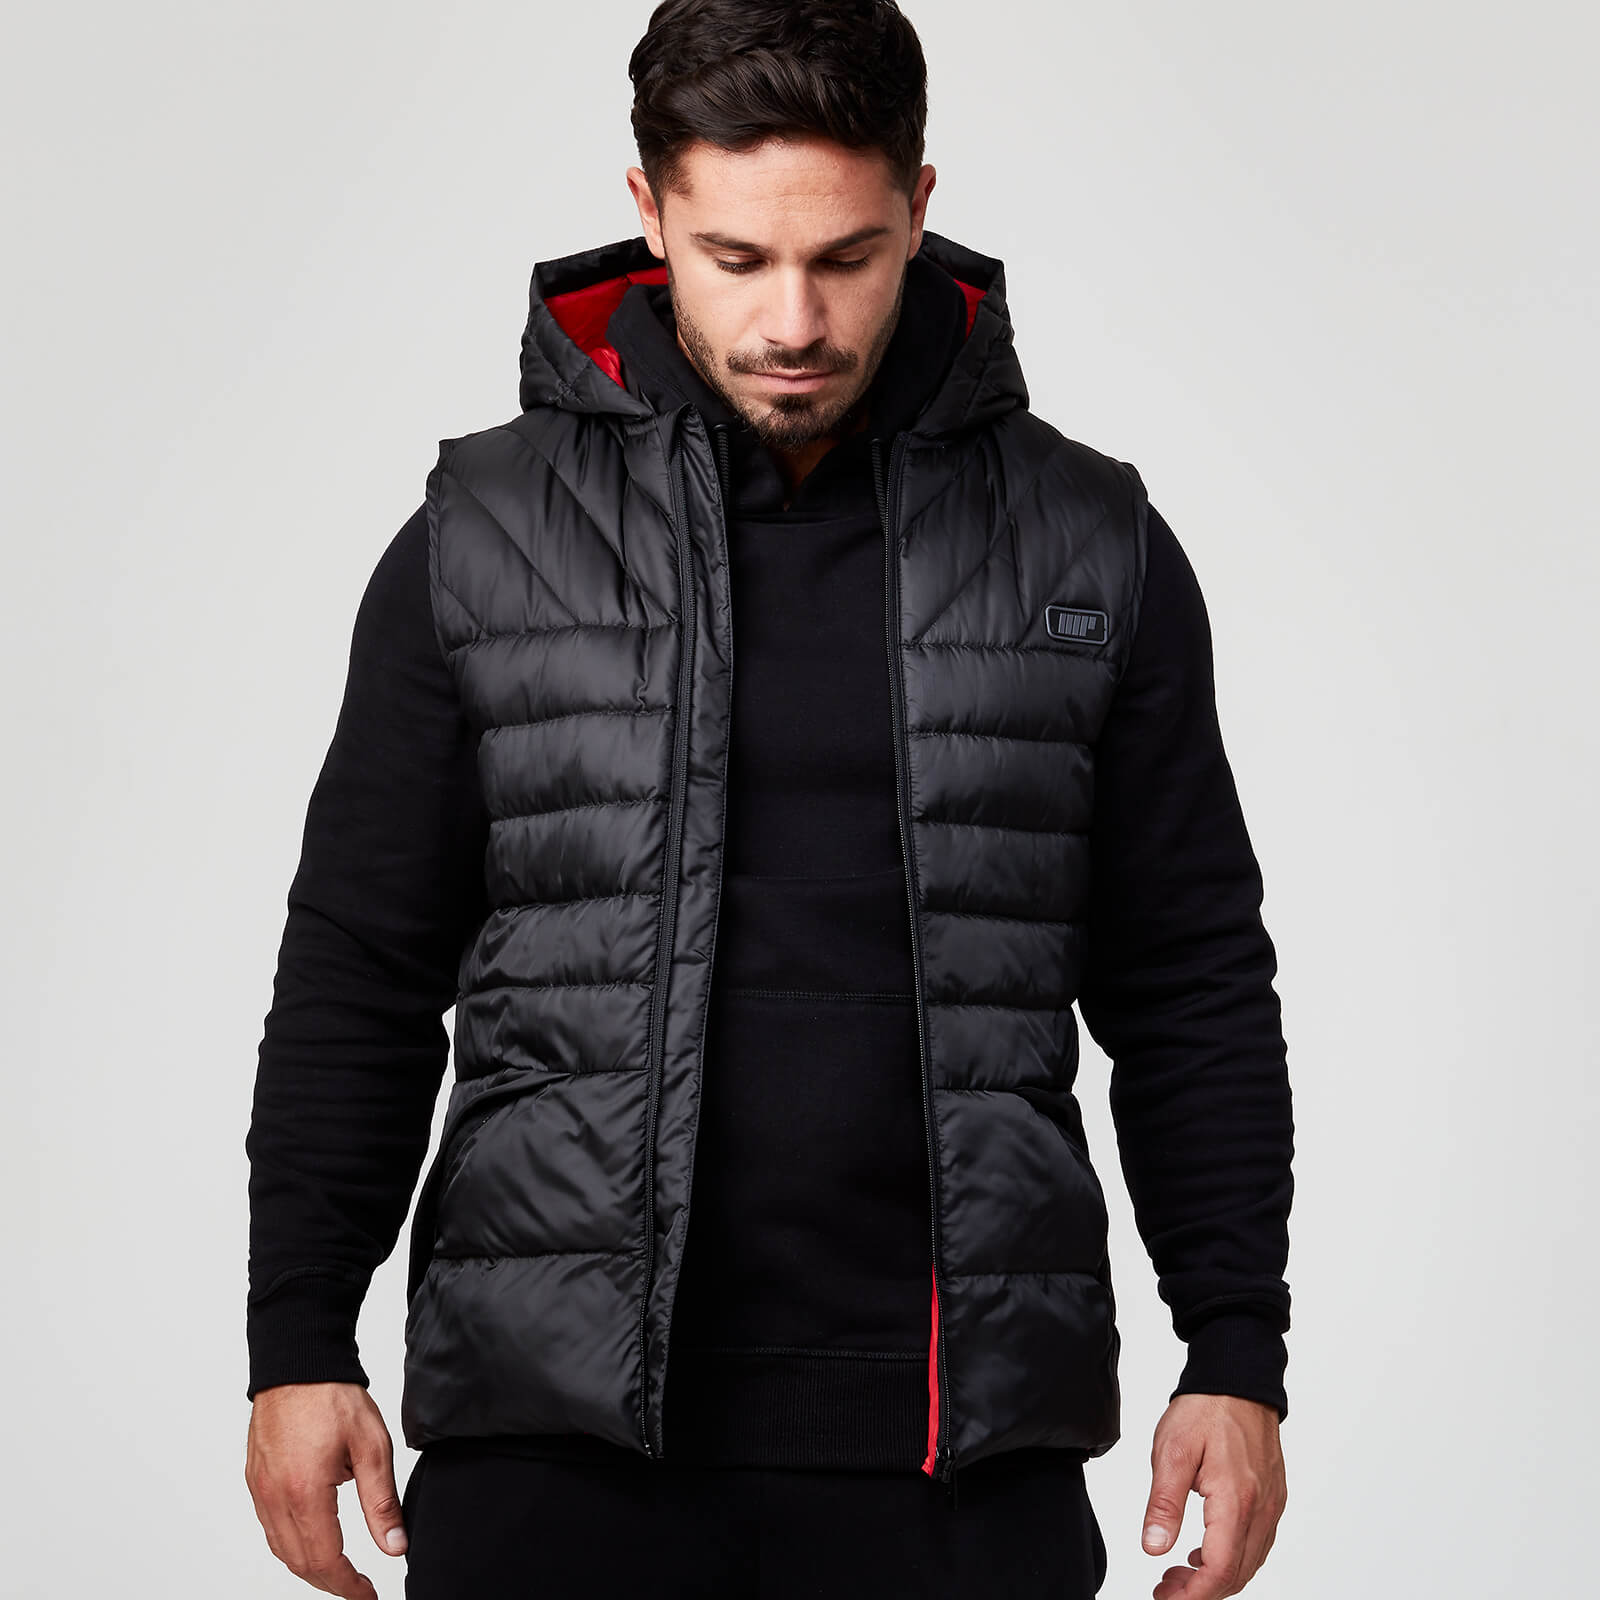 Pro Tech Heavyweight Gilet - Black - L